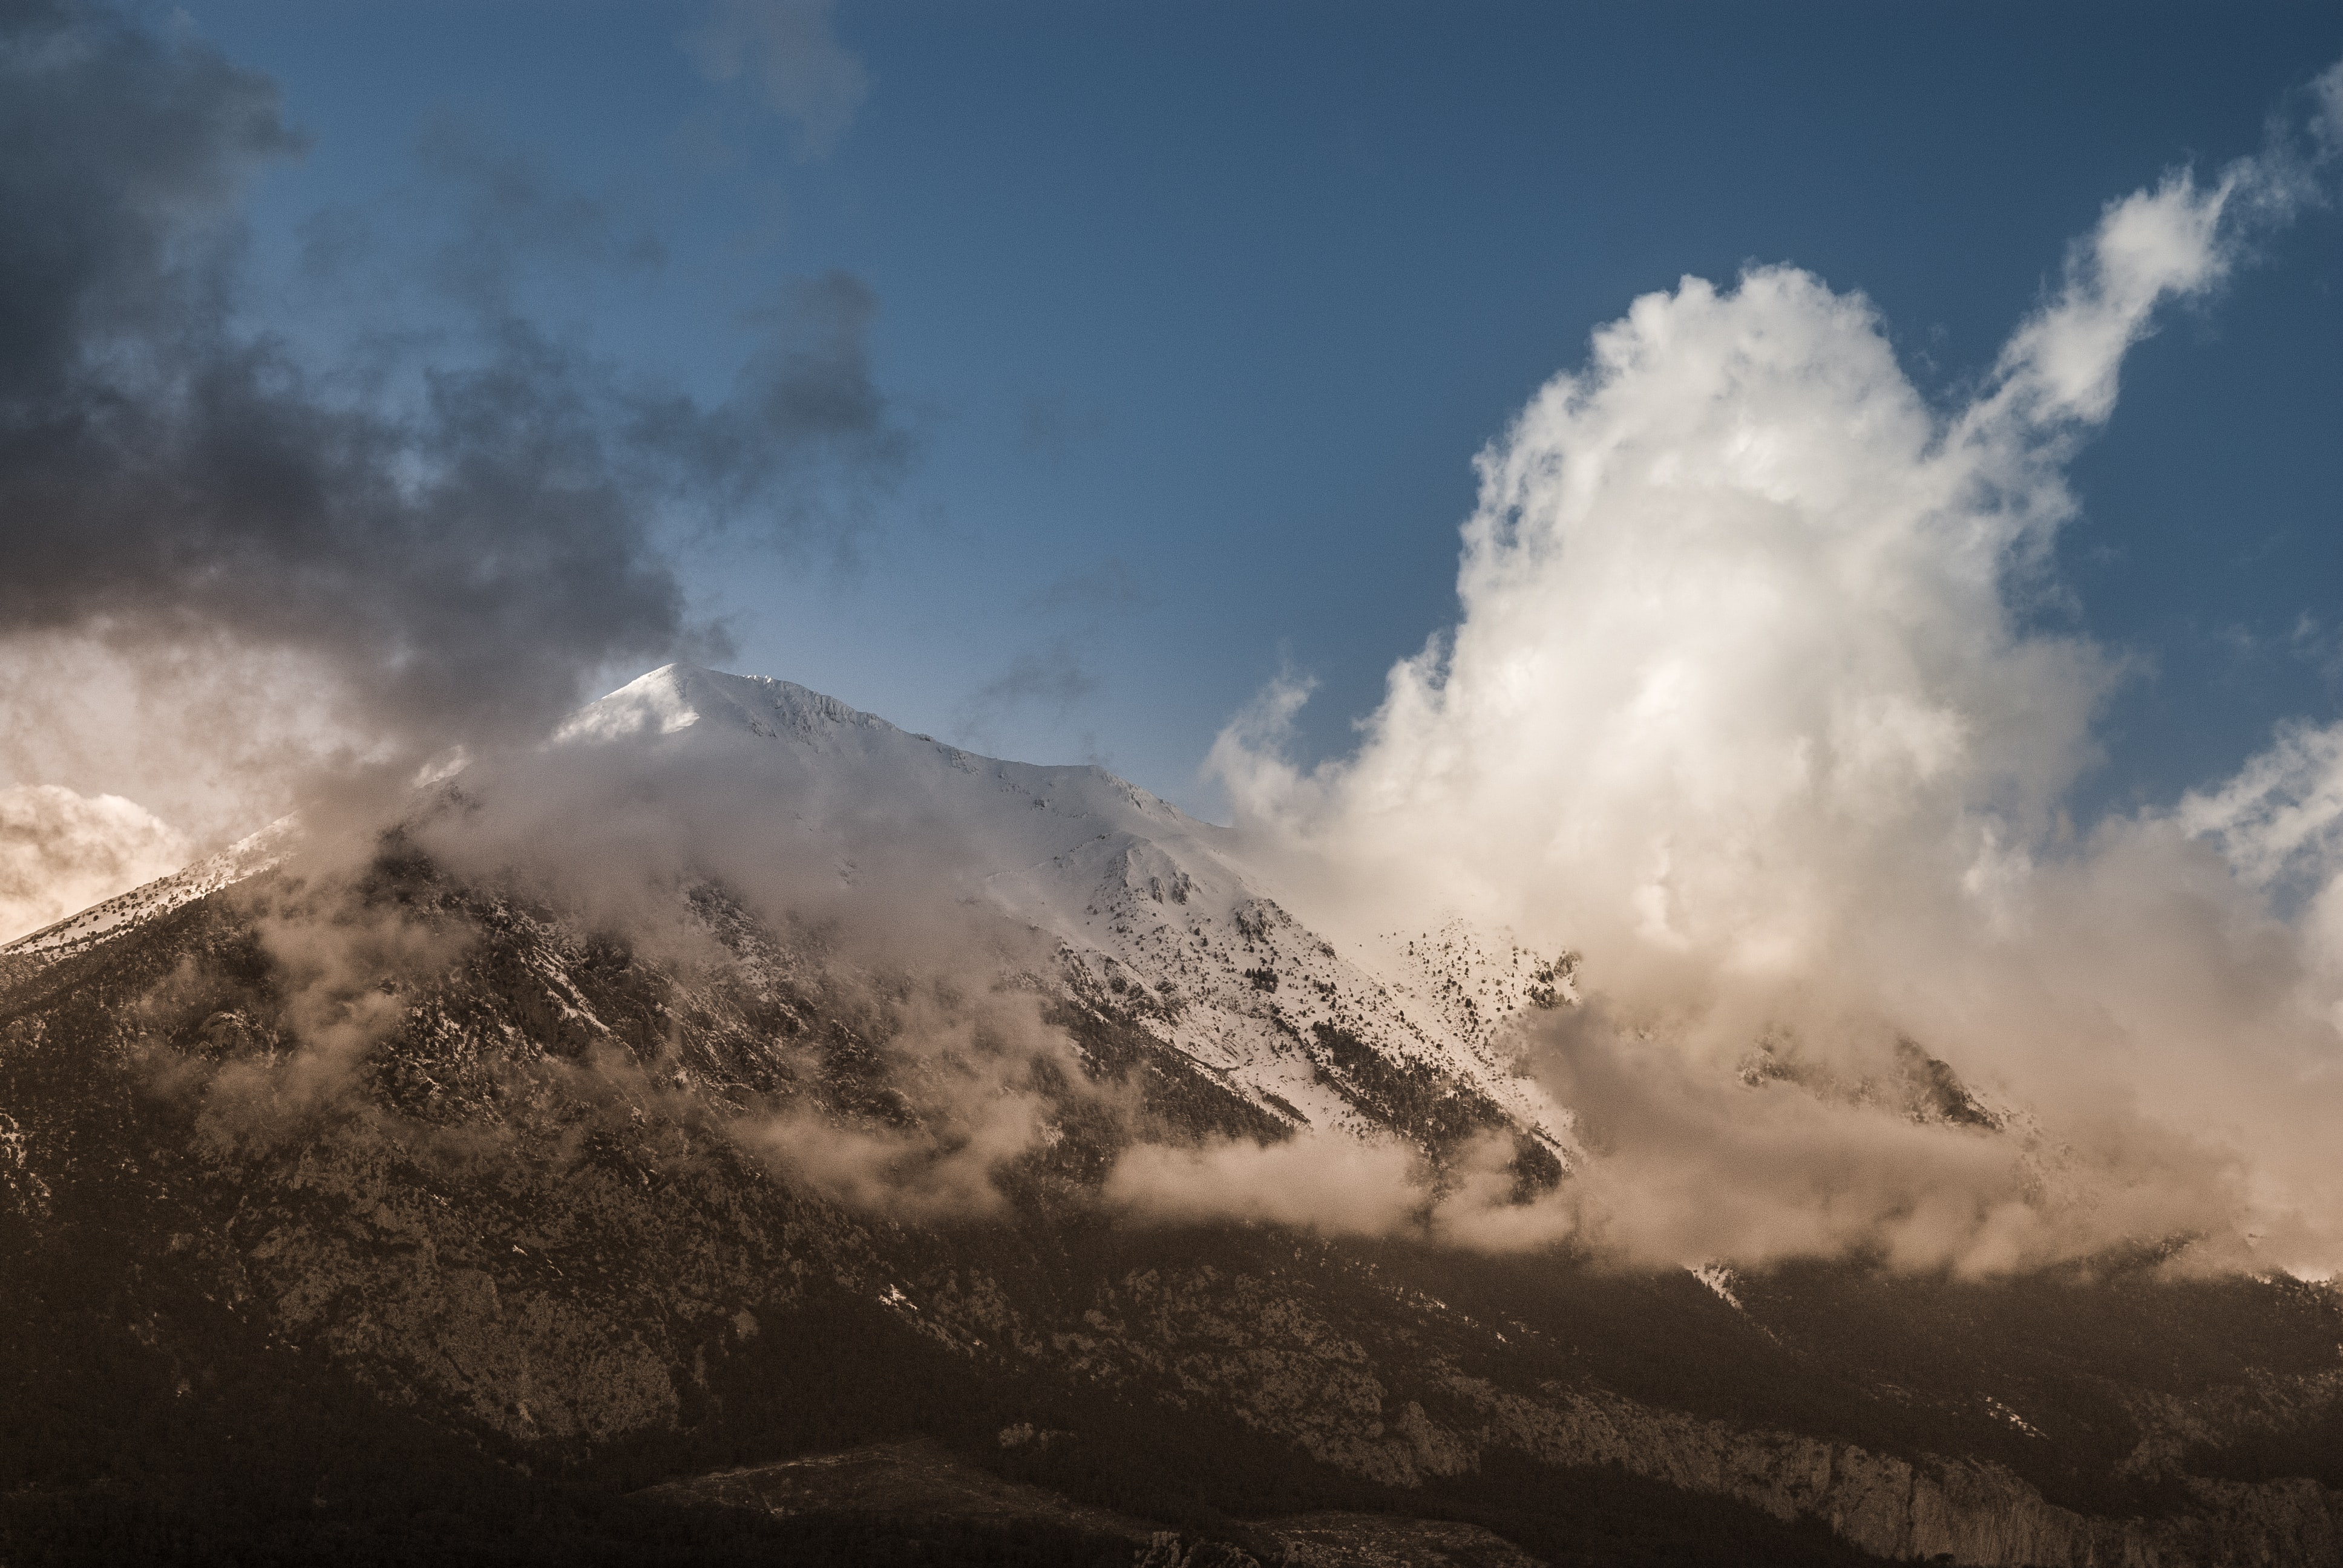 White clouds gathering around a snow-capped mountain